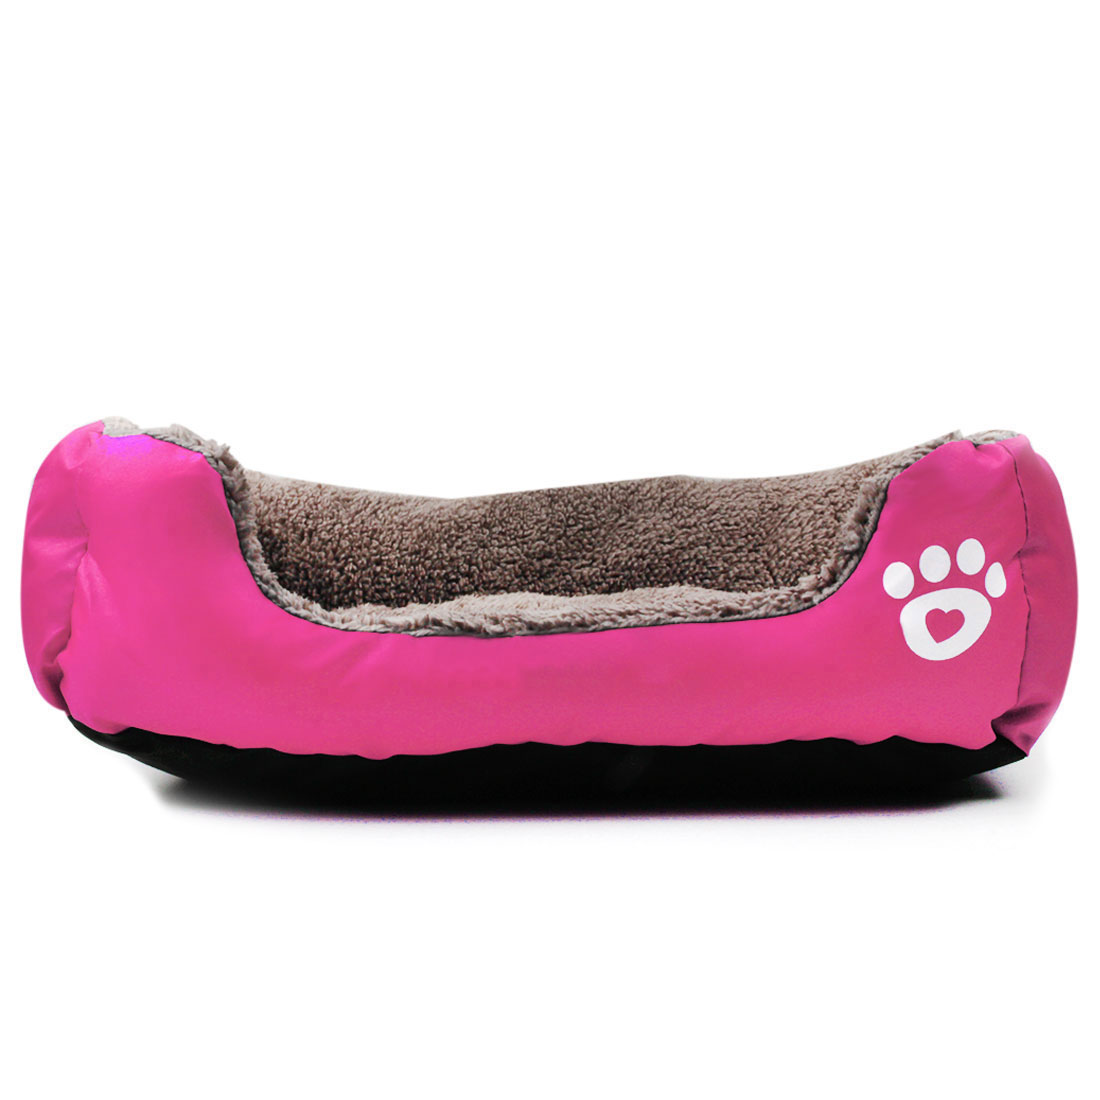 Pet Dog Bed Kennel Cat Puppy Bed Mat Pad Warm Cushion House Fuchsia, L